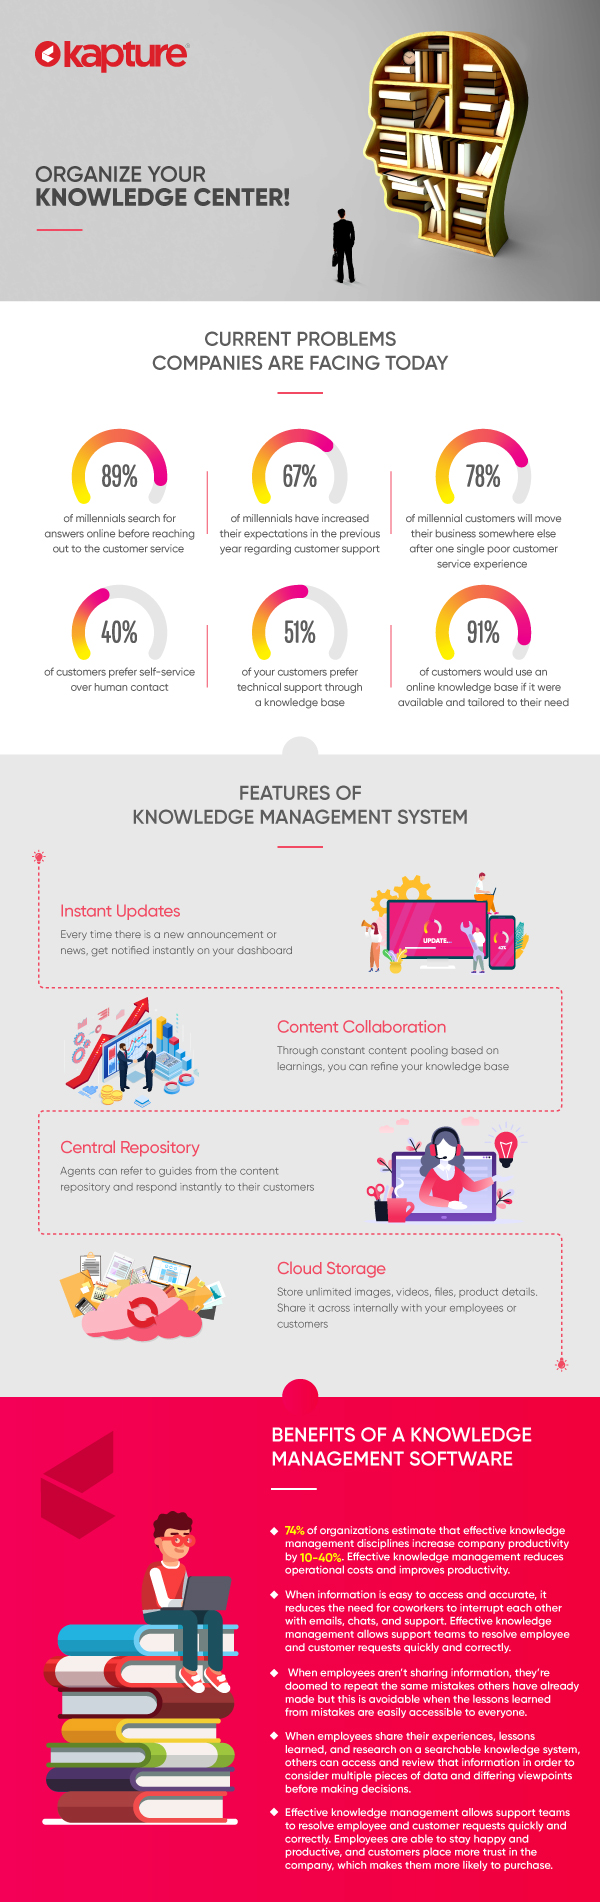 Features & Benefits of Knowledge Management Software System